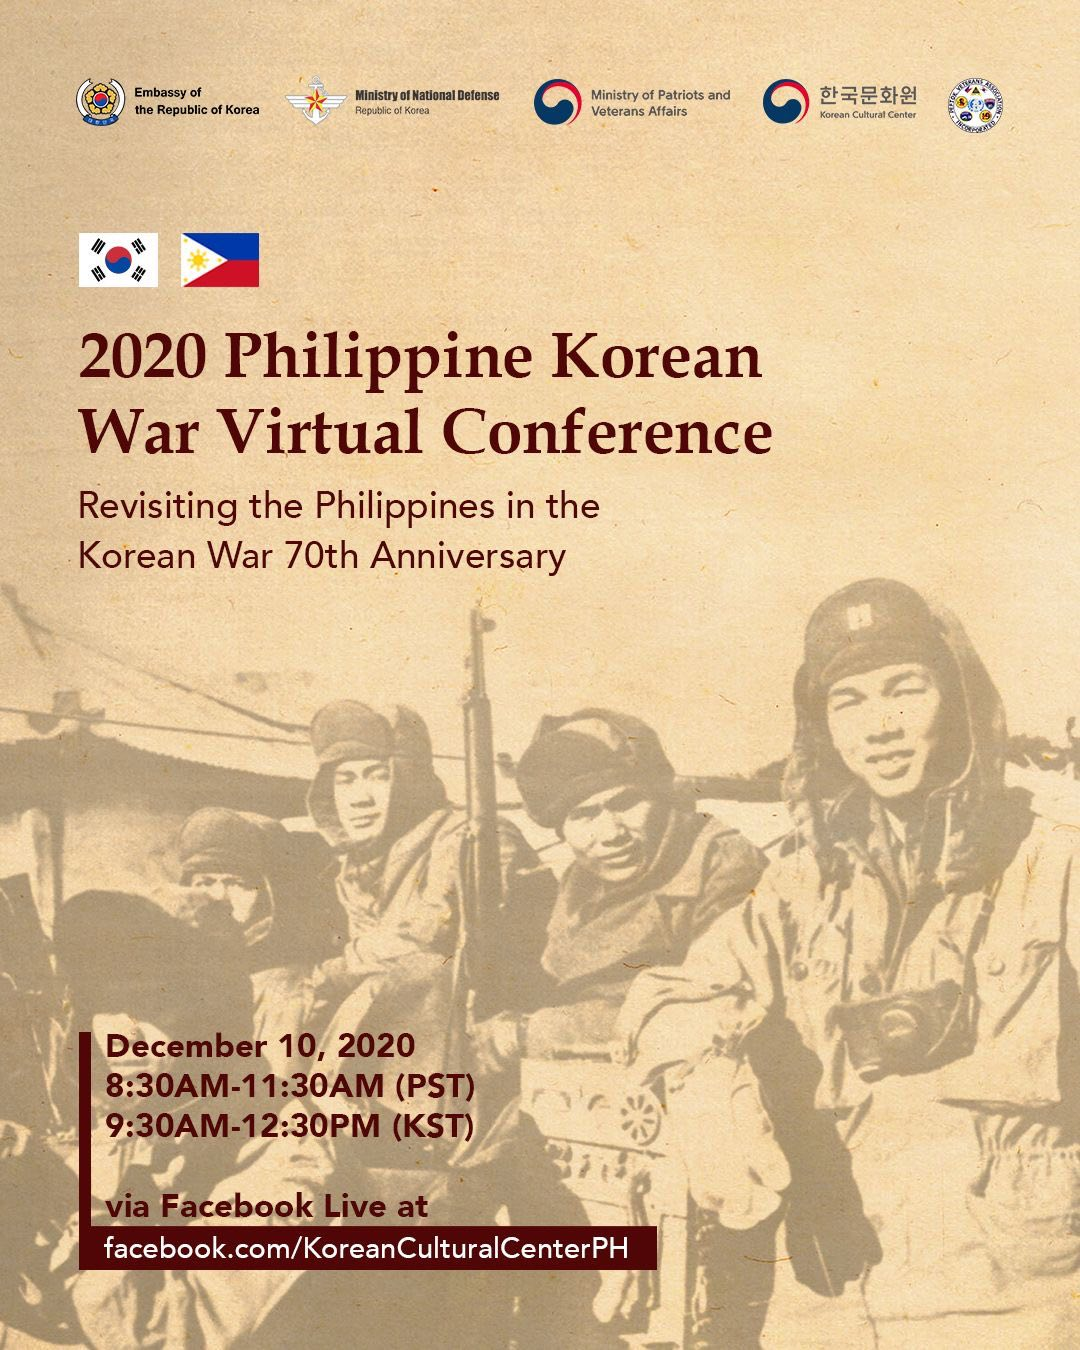 Filipino Veterans to be honored at Philippine Korean War Virtual Conference